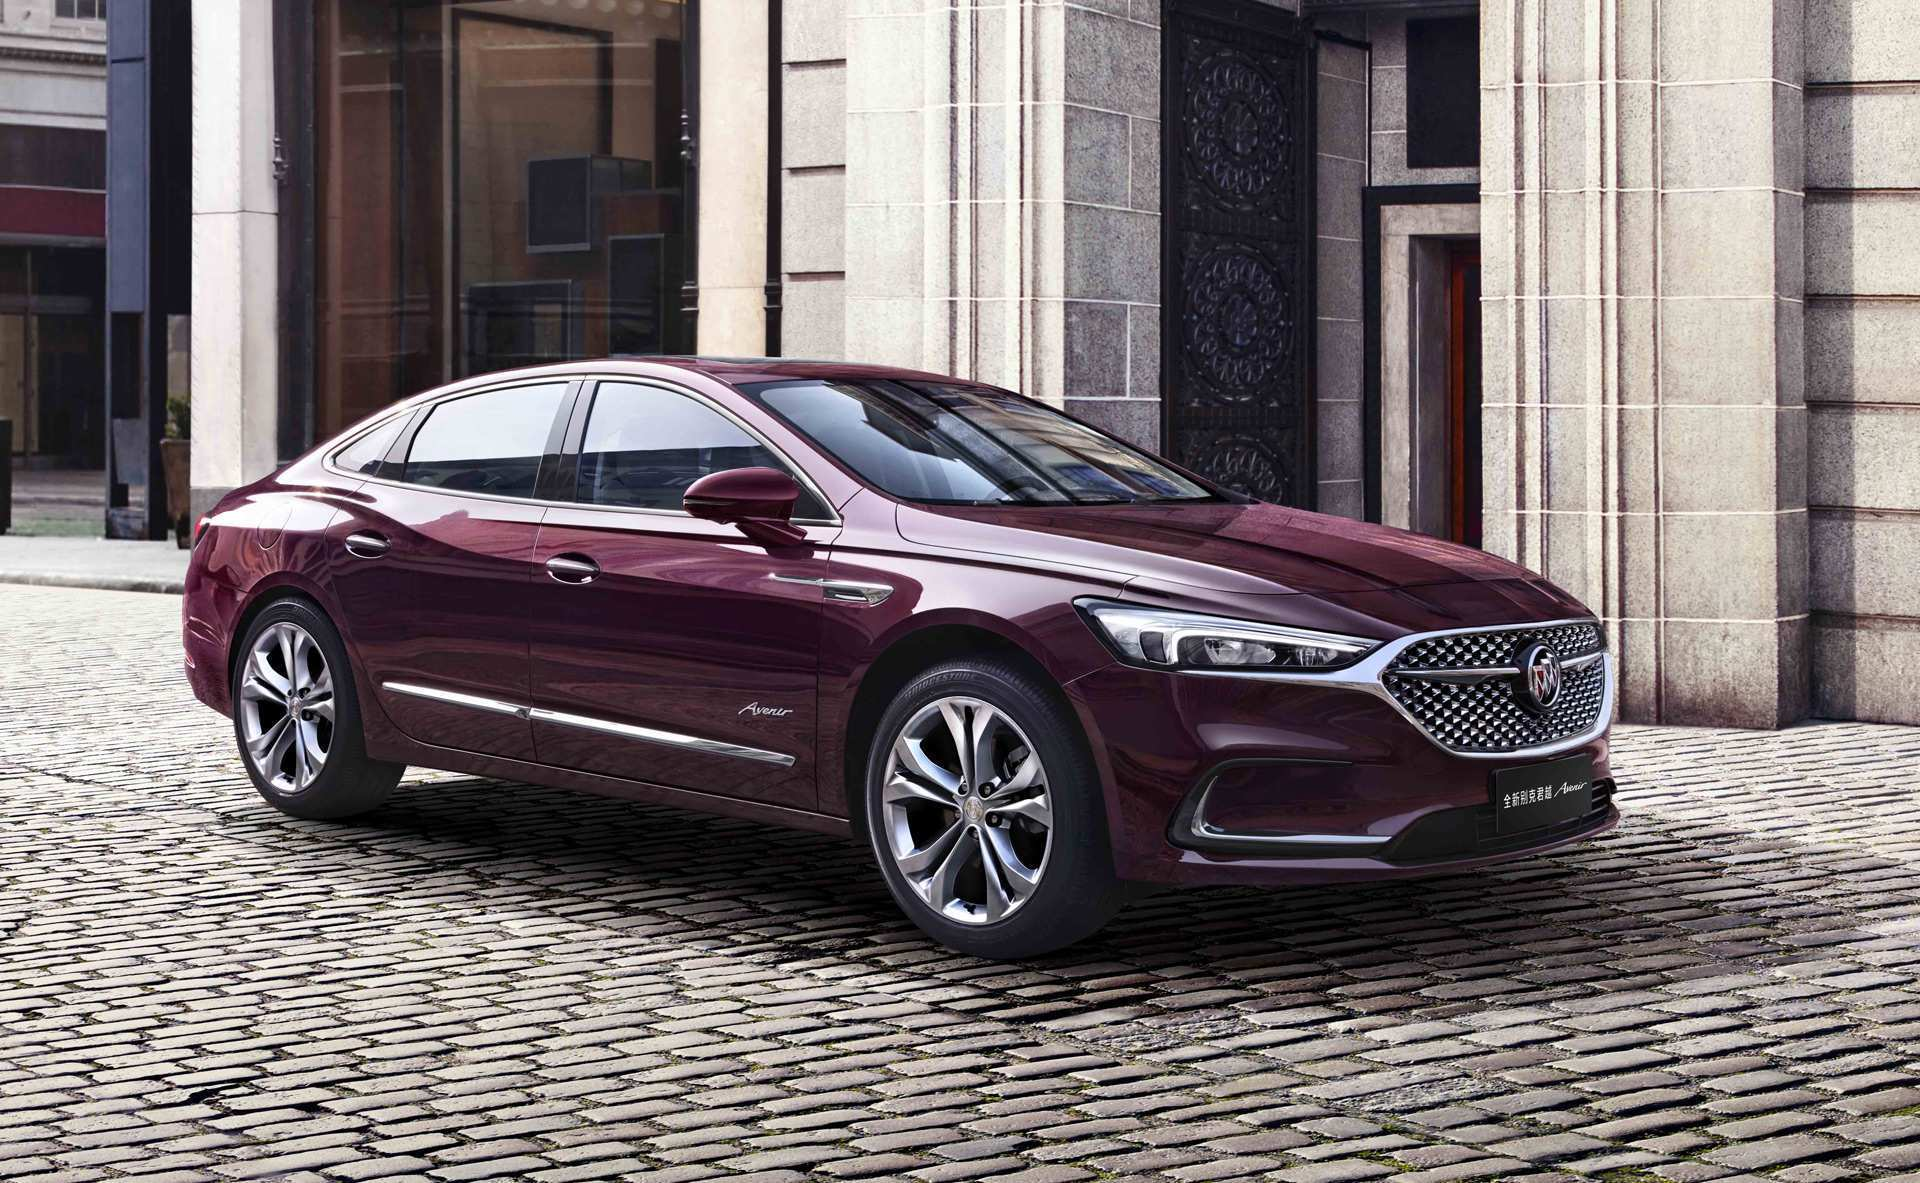 80 Best Buick Enclave Avenir 2020 Price Design And Review